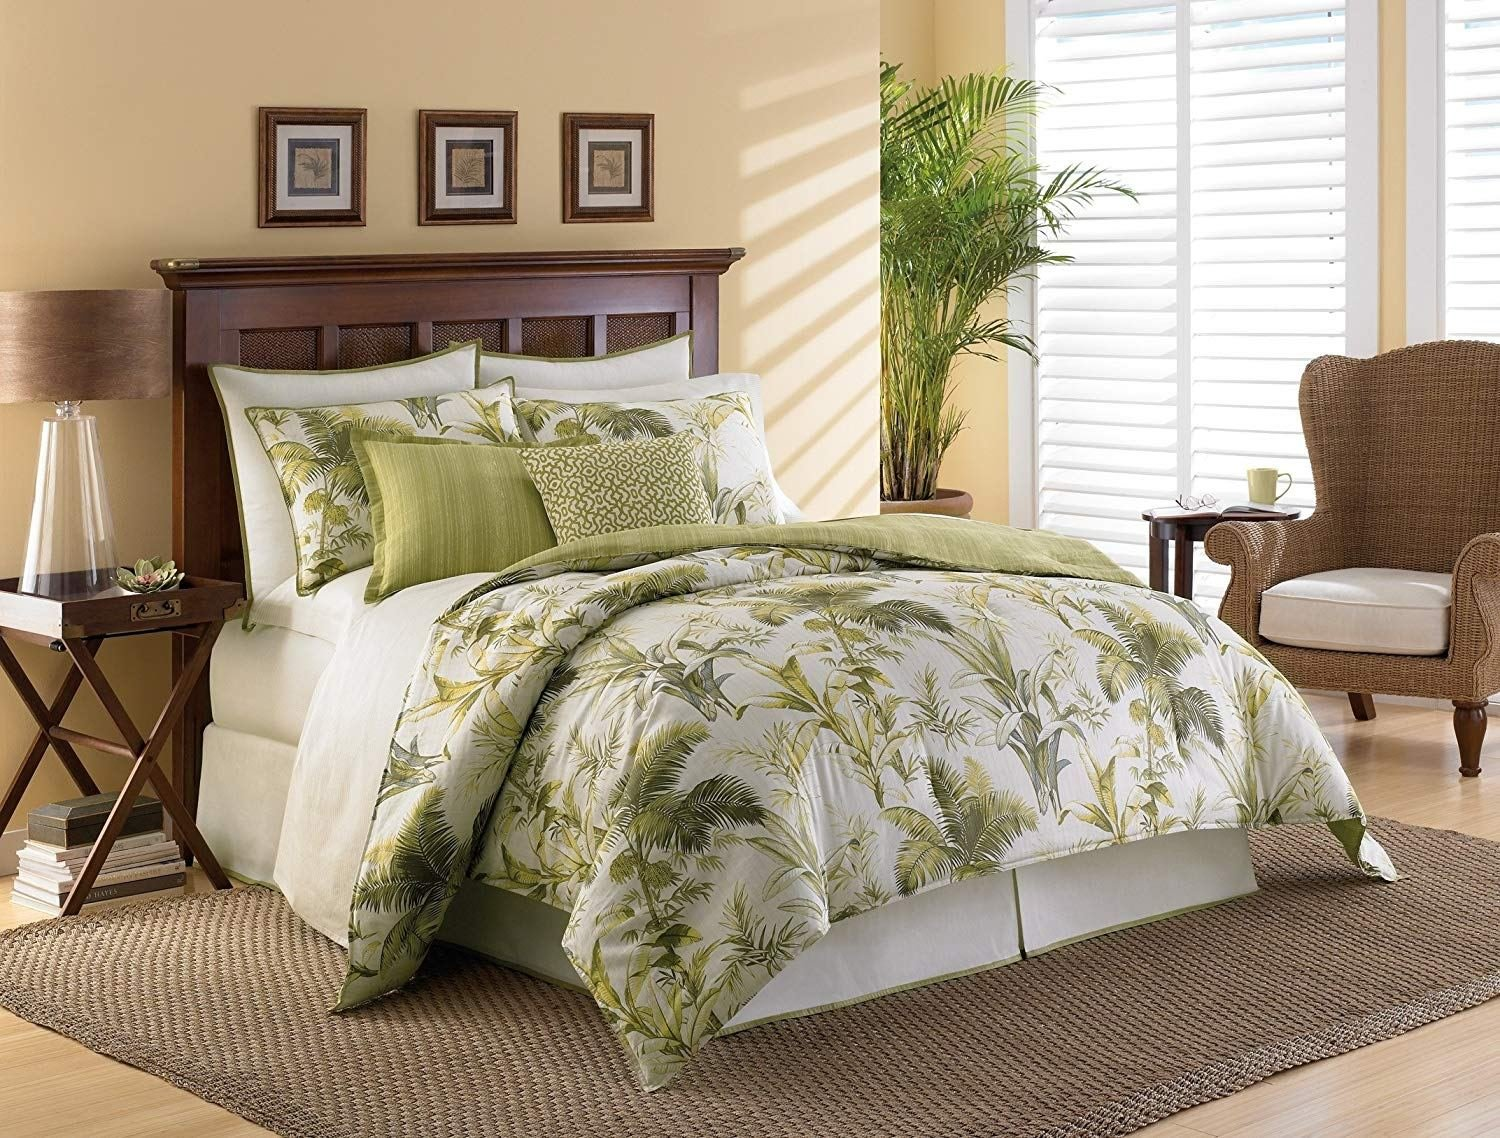 Best Green Bedding And Bedroom Decor Ideas With Pictures